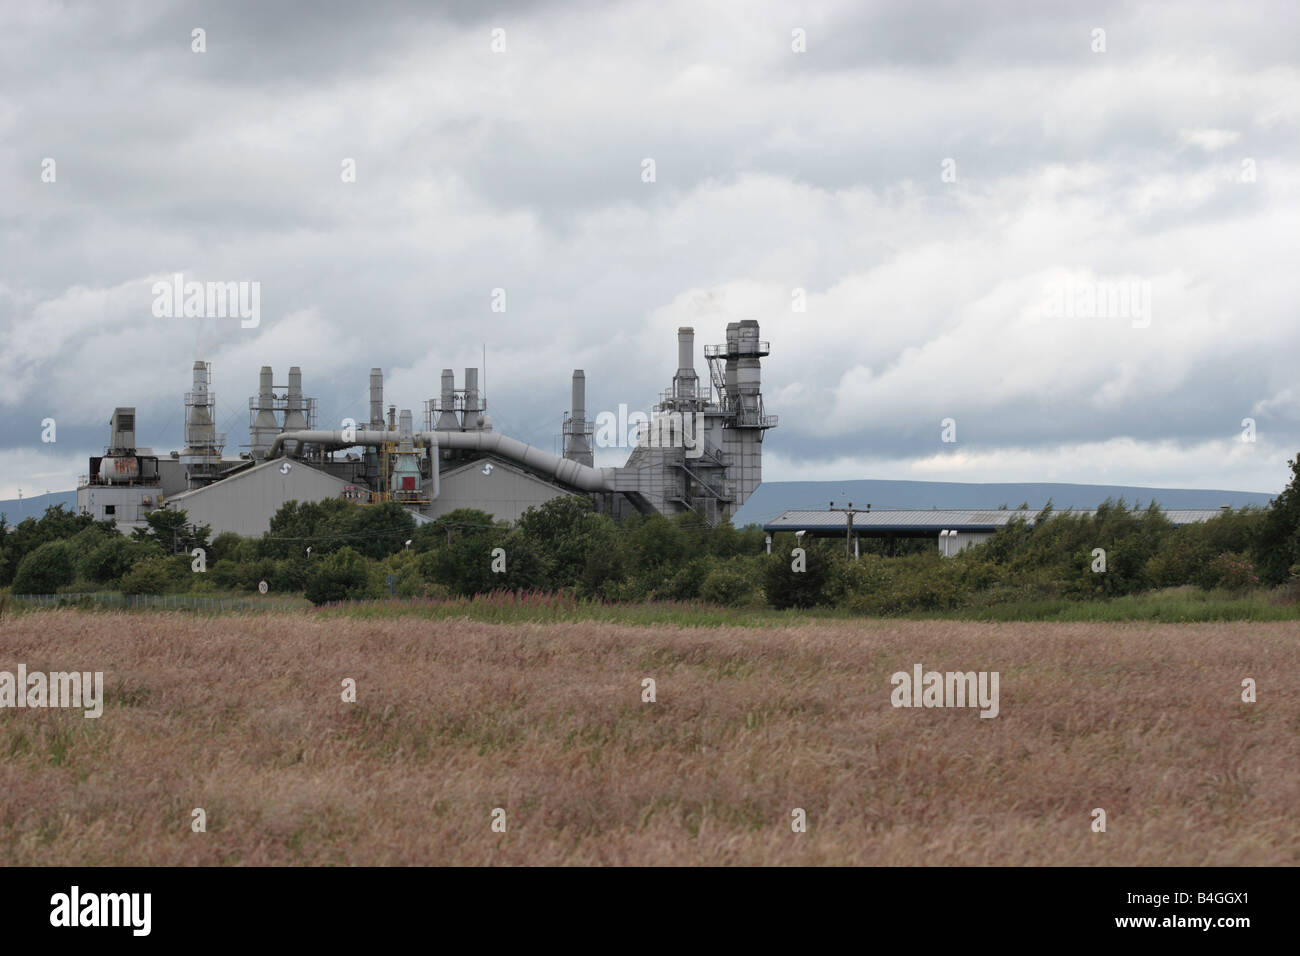 Emission free chimneys of an insulation manufacturing factory under a heavy sky, Stirling. - Stock Image